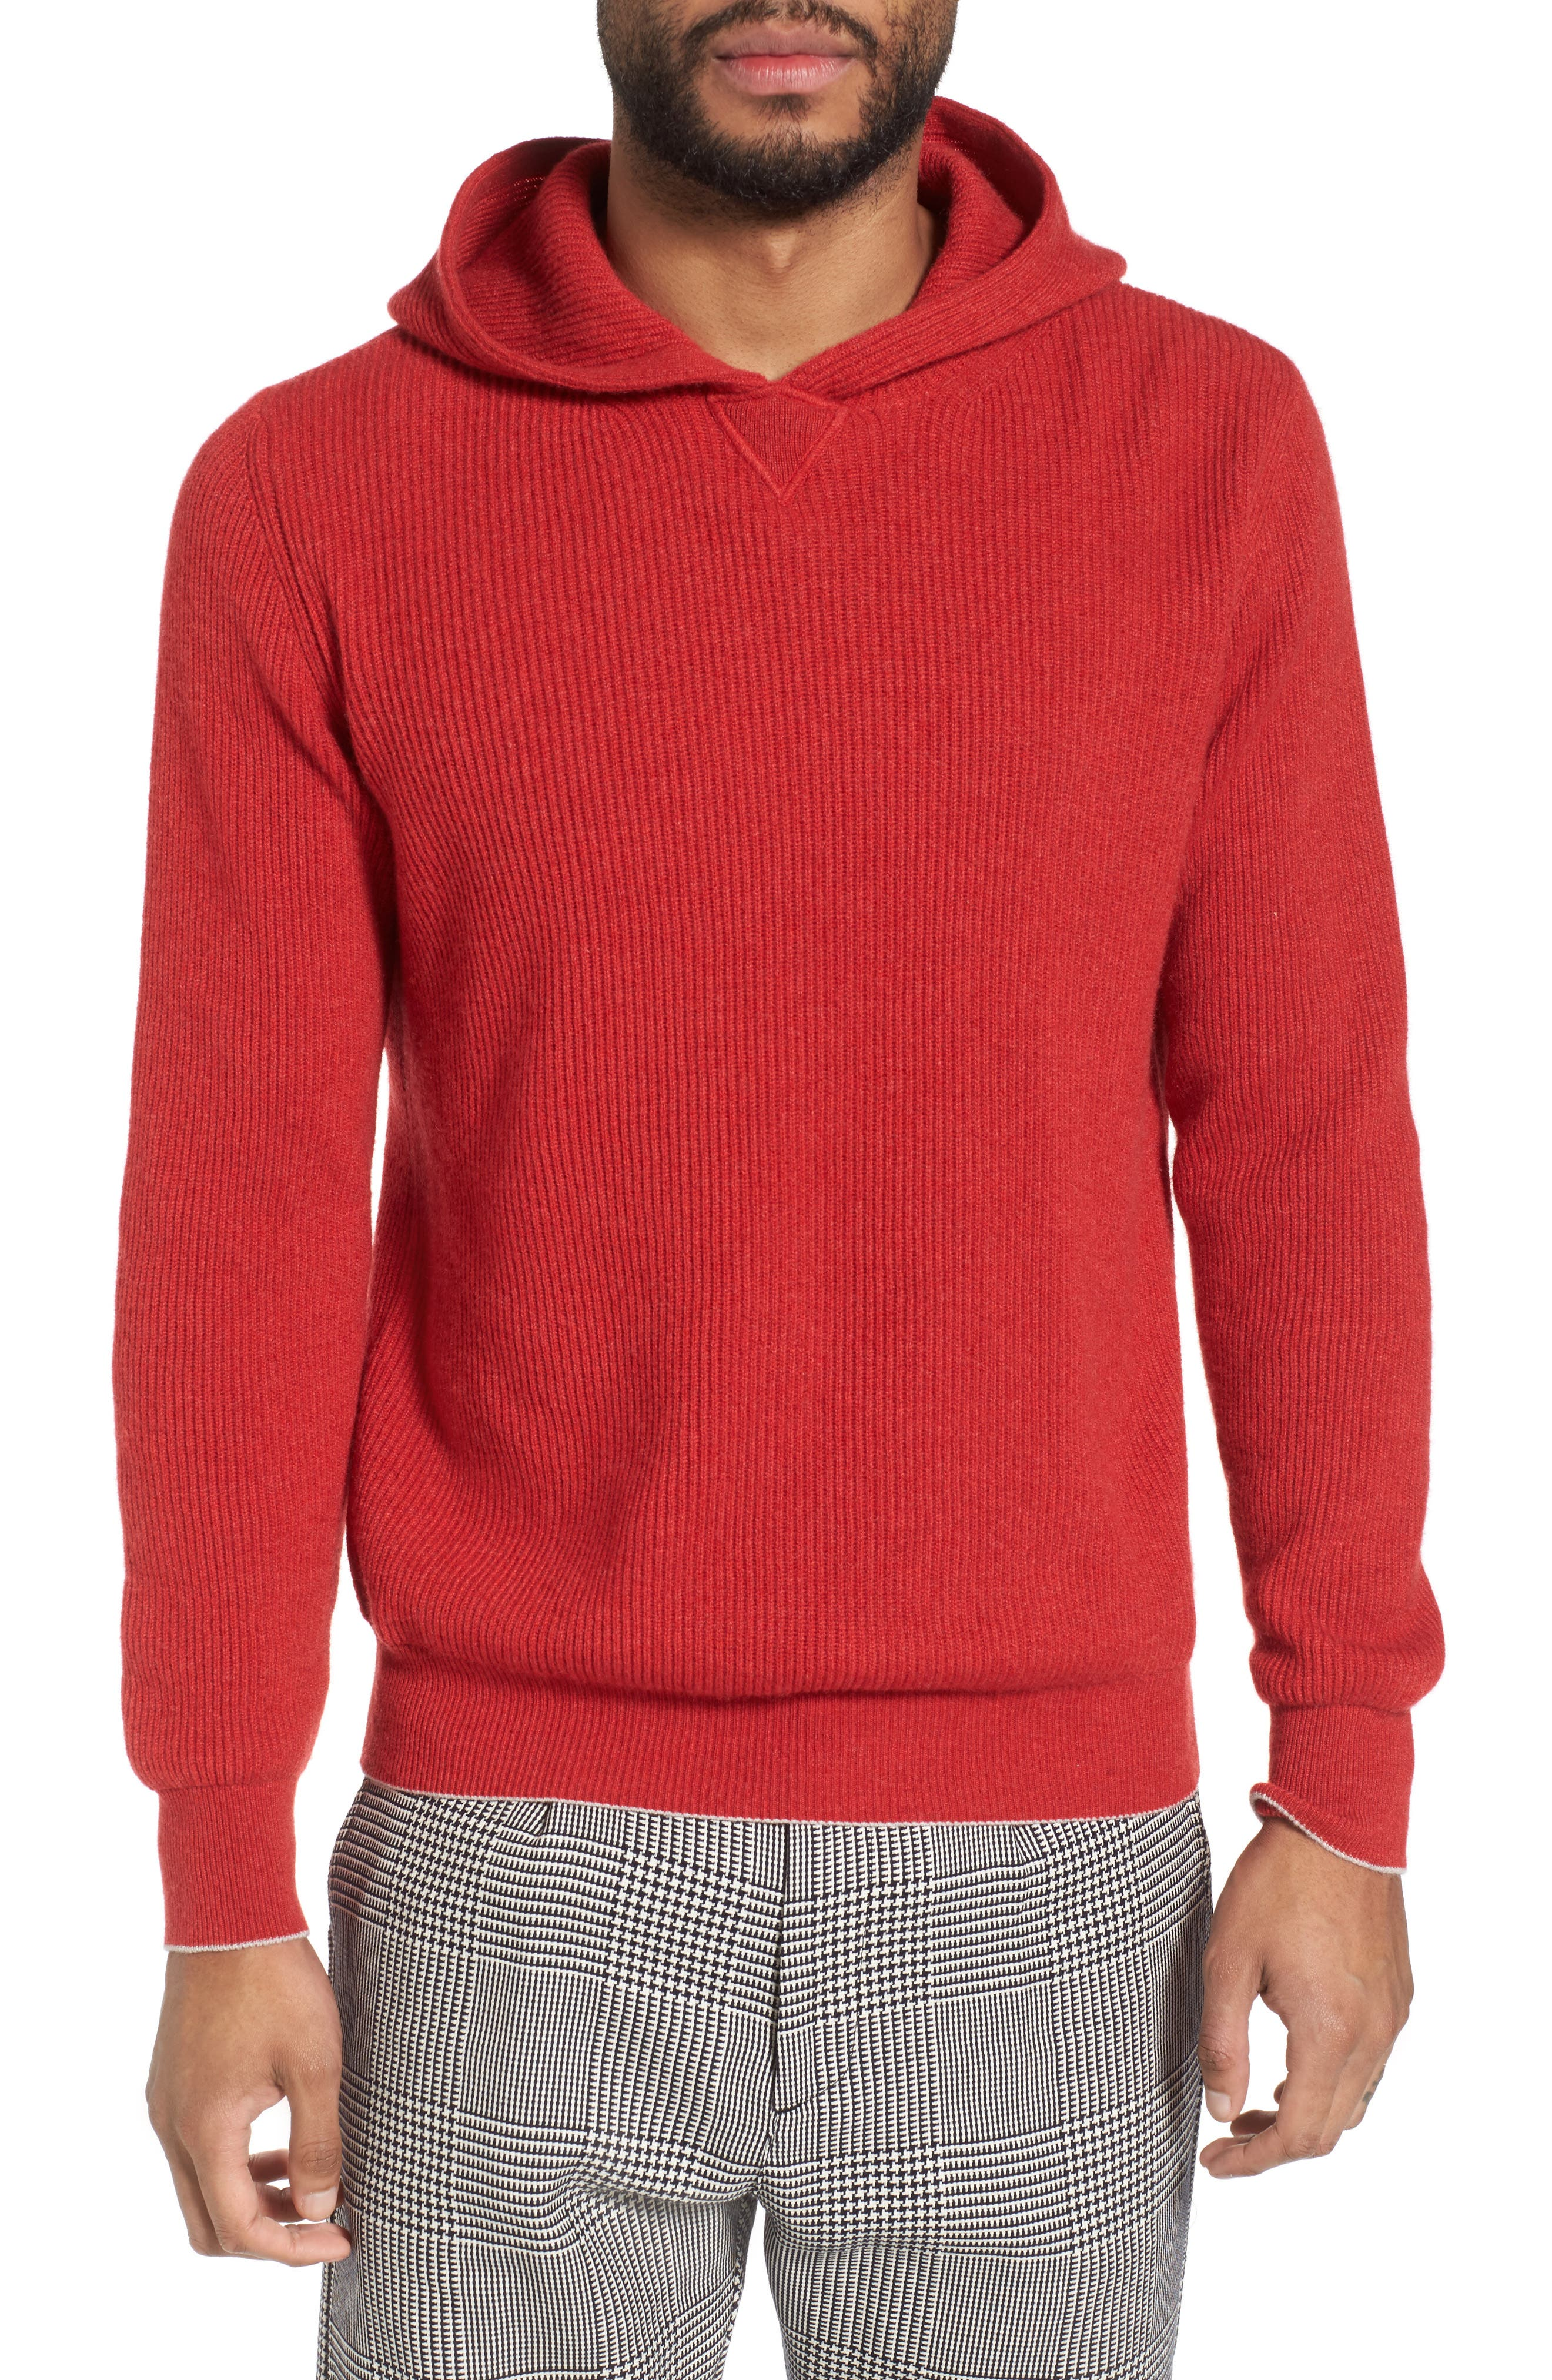 Cashmere Hoodie,                         Main,                         color, Red